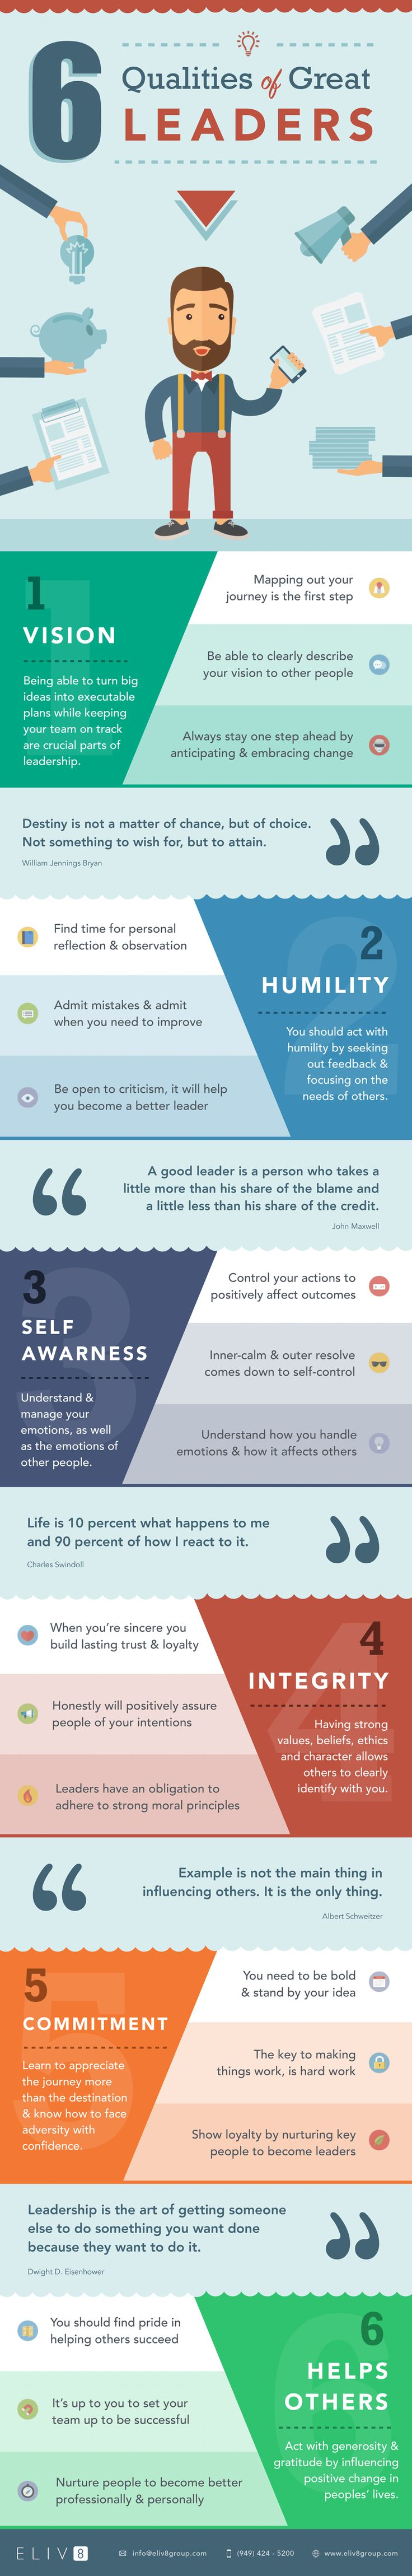 """If you've ever wondered: """"What are the more important leadership characteristics?"""", """"Which leadership qualities & traits should I be focusing on?"""", """"How can I become a better leader?"""" Then Ï've just the thing for you... Learn about the 6 most important leadership characteristics and qualities with this helpful ingographic - includes powerdul leadership quotes and advice. #infographic"""